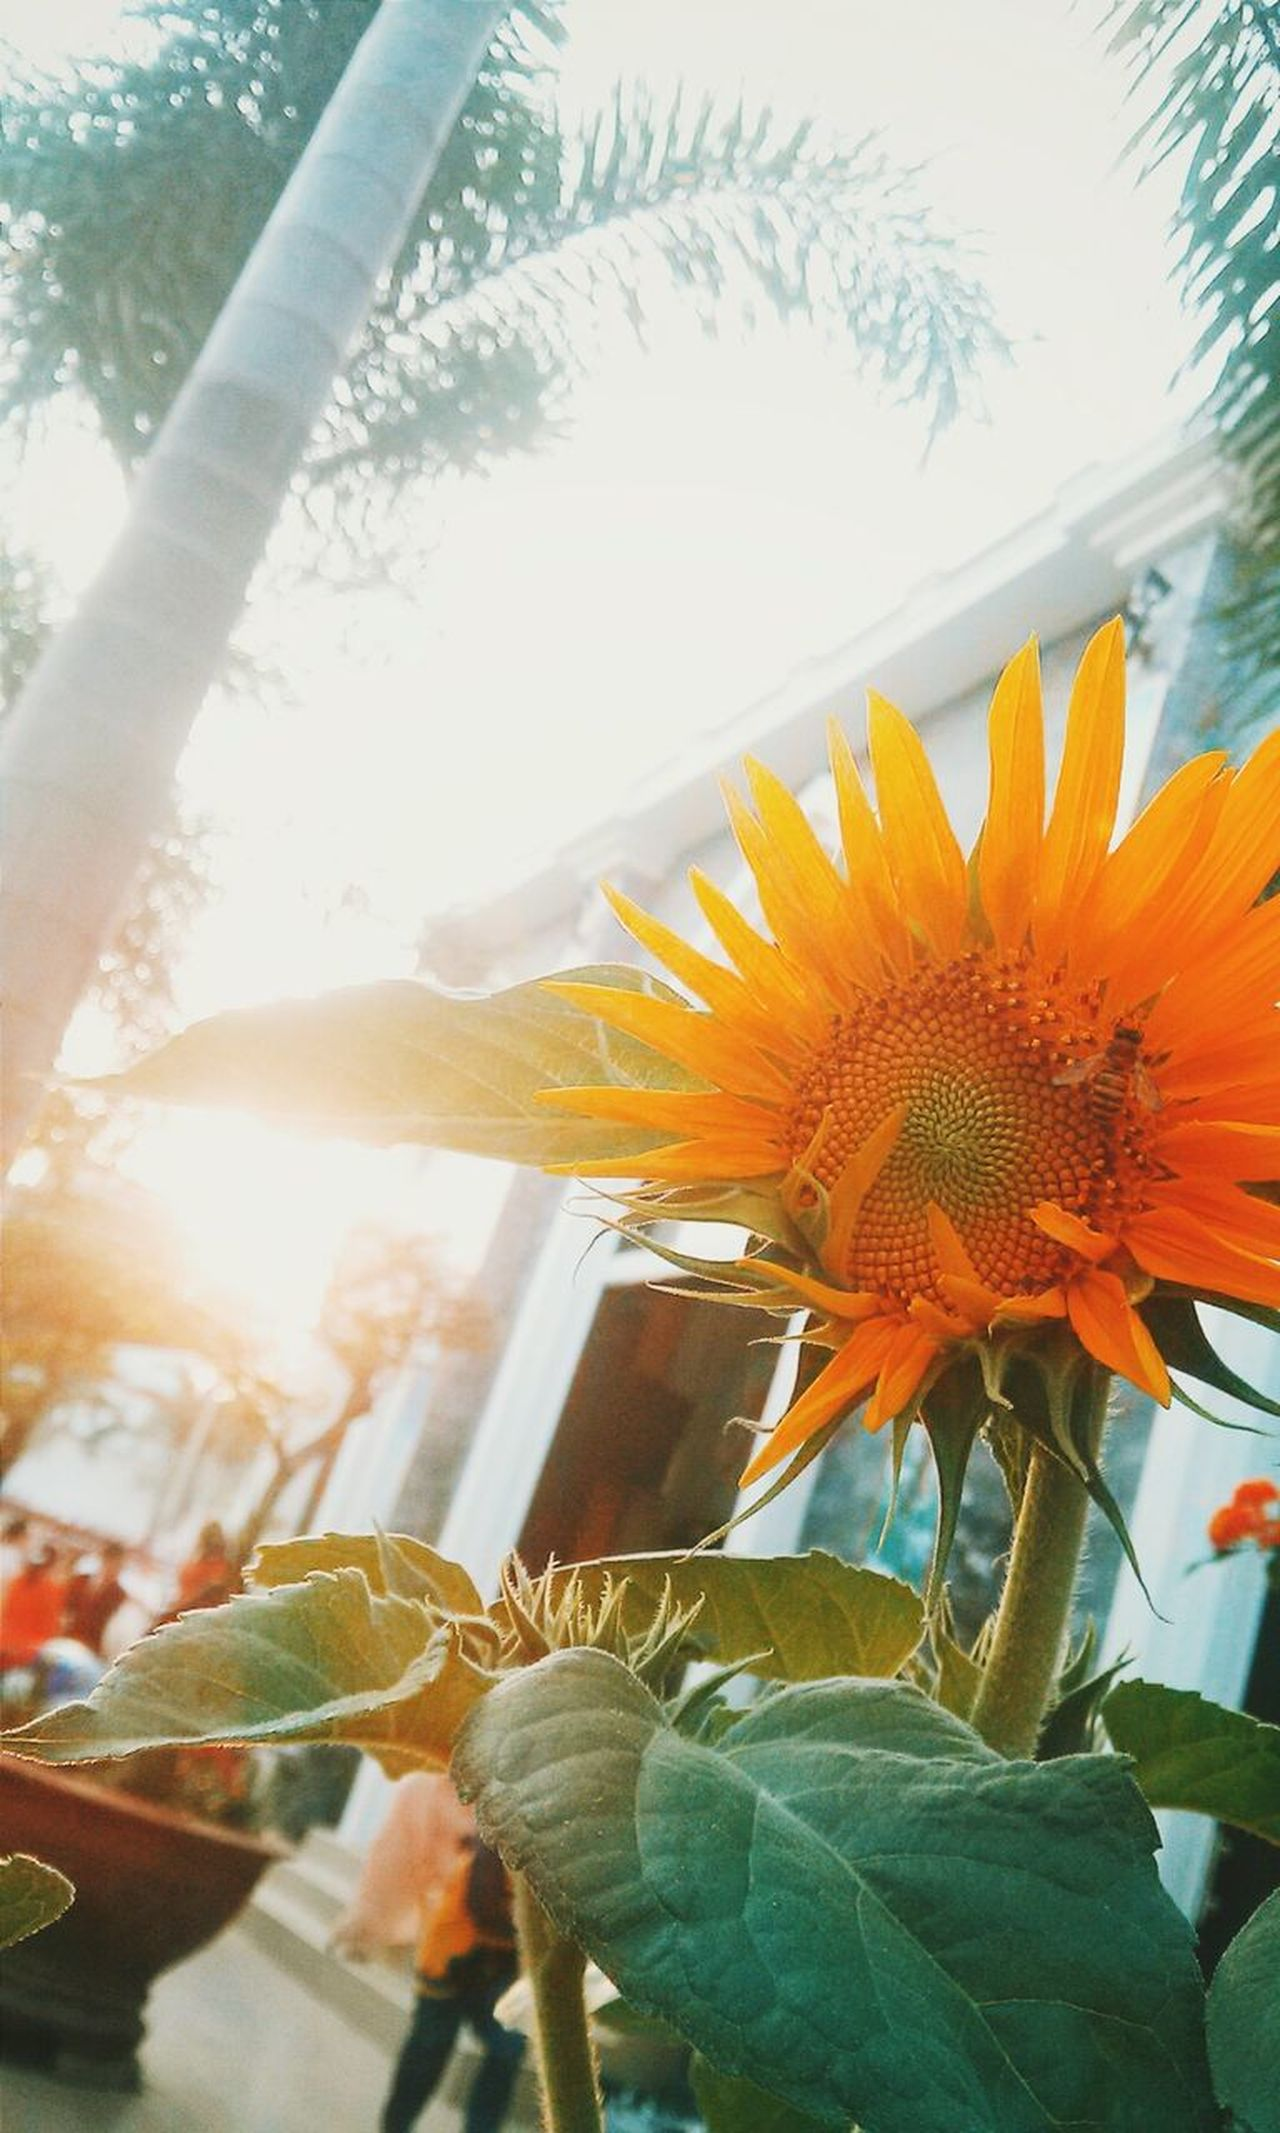 The Week On EyeEm Vietnamnewyear Sunflower Sunshine Firstdayoftheyear 2016 Yearofmonkey